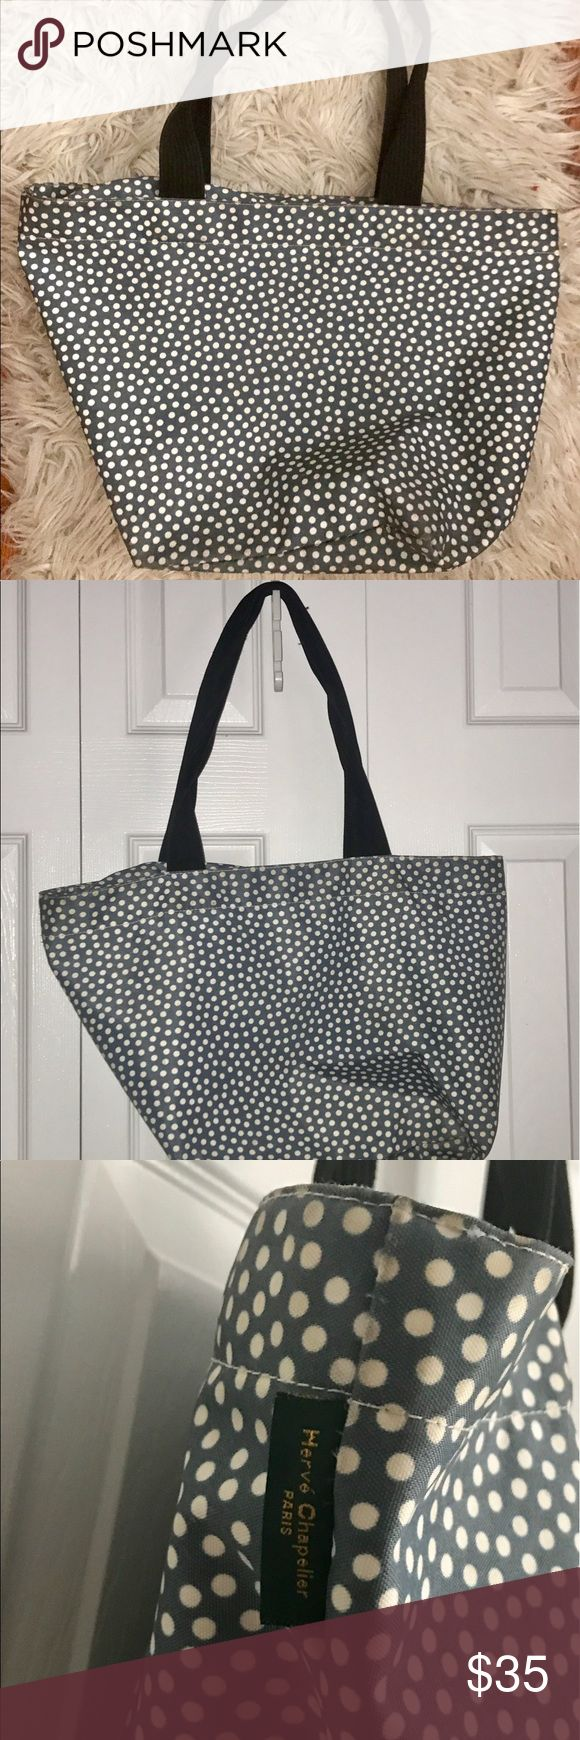 Blue and white polka dot tote bag Double strap blue and white polka dot tote bag. In good condition. Bags Totes